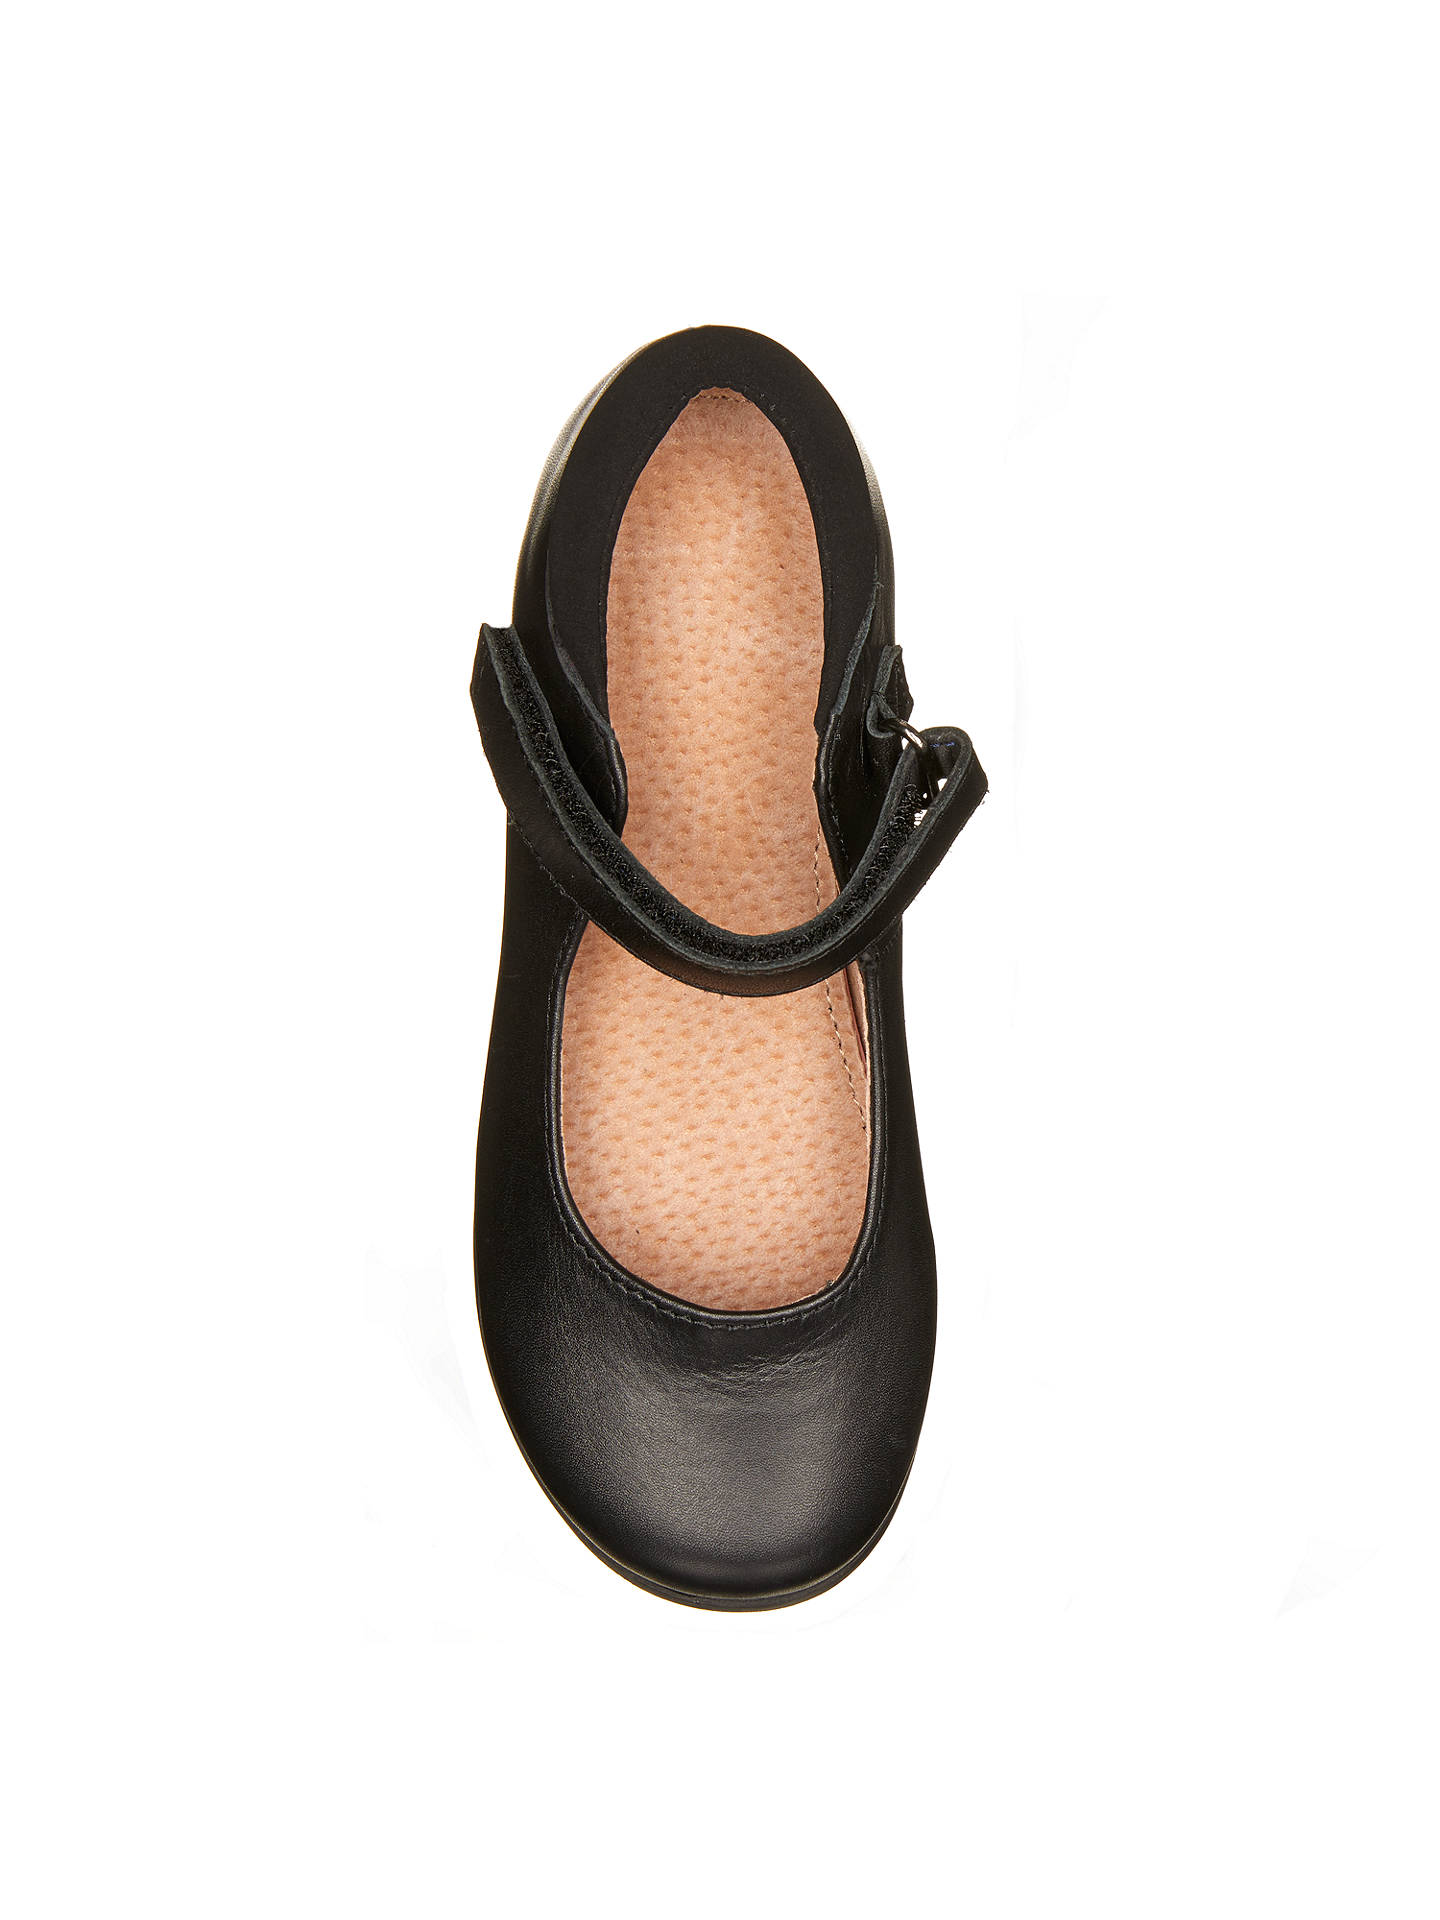 Buy John Lewis & Partners Children's Devon Mary Jane Shoes, Black, 10W Jnr Online at johnlewis.com